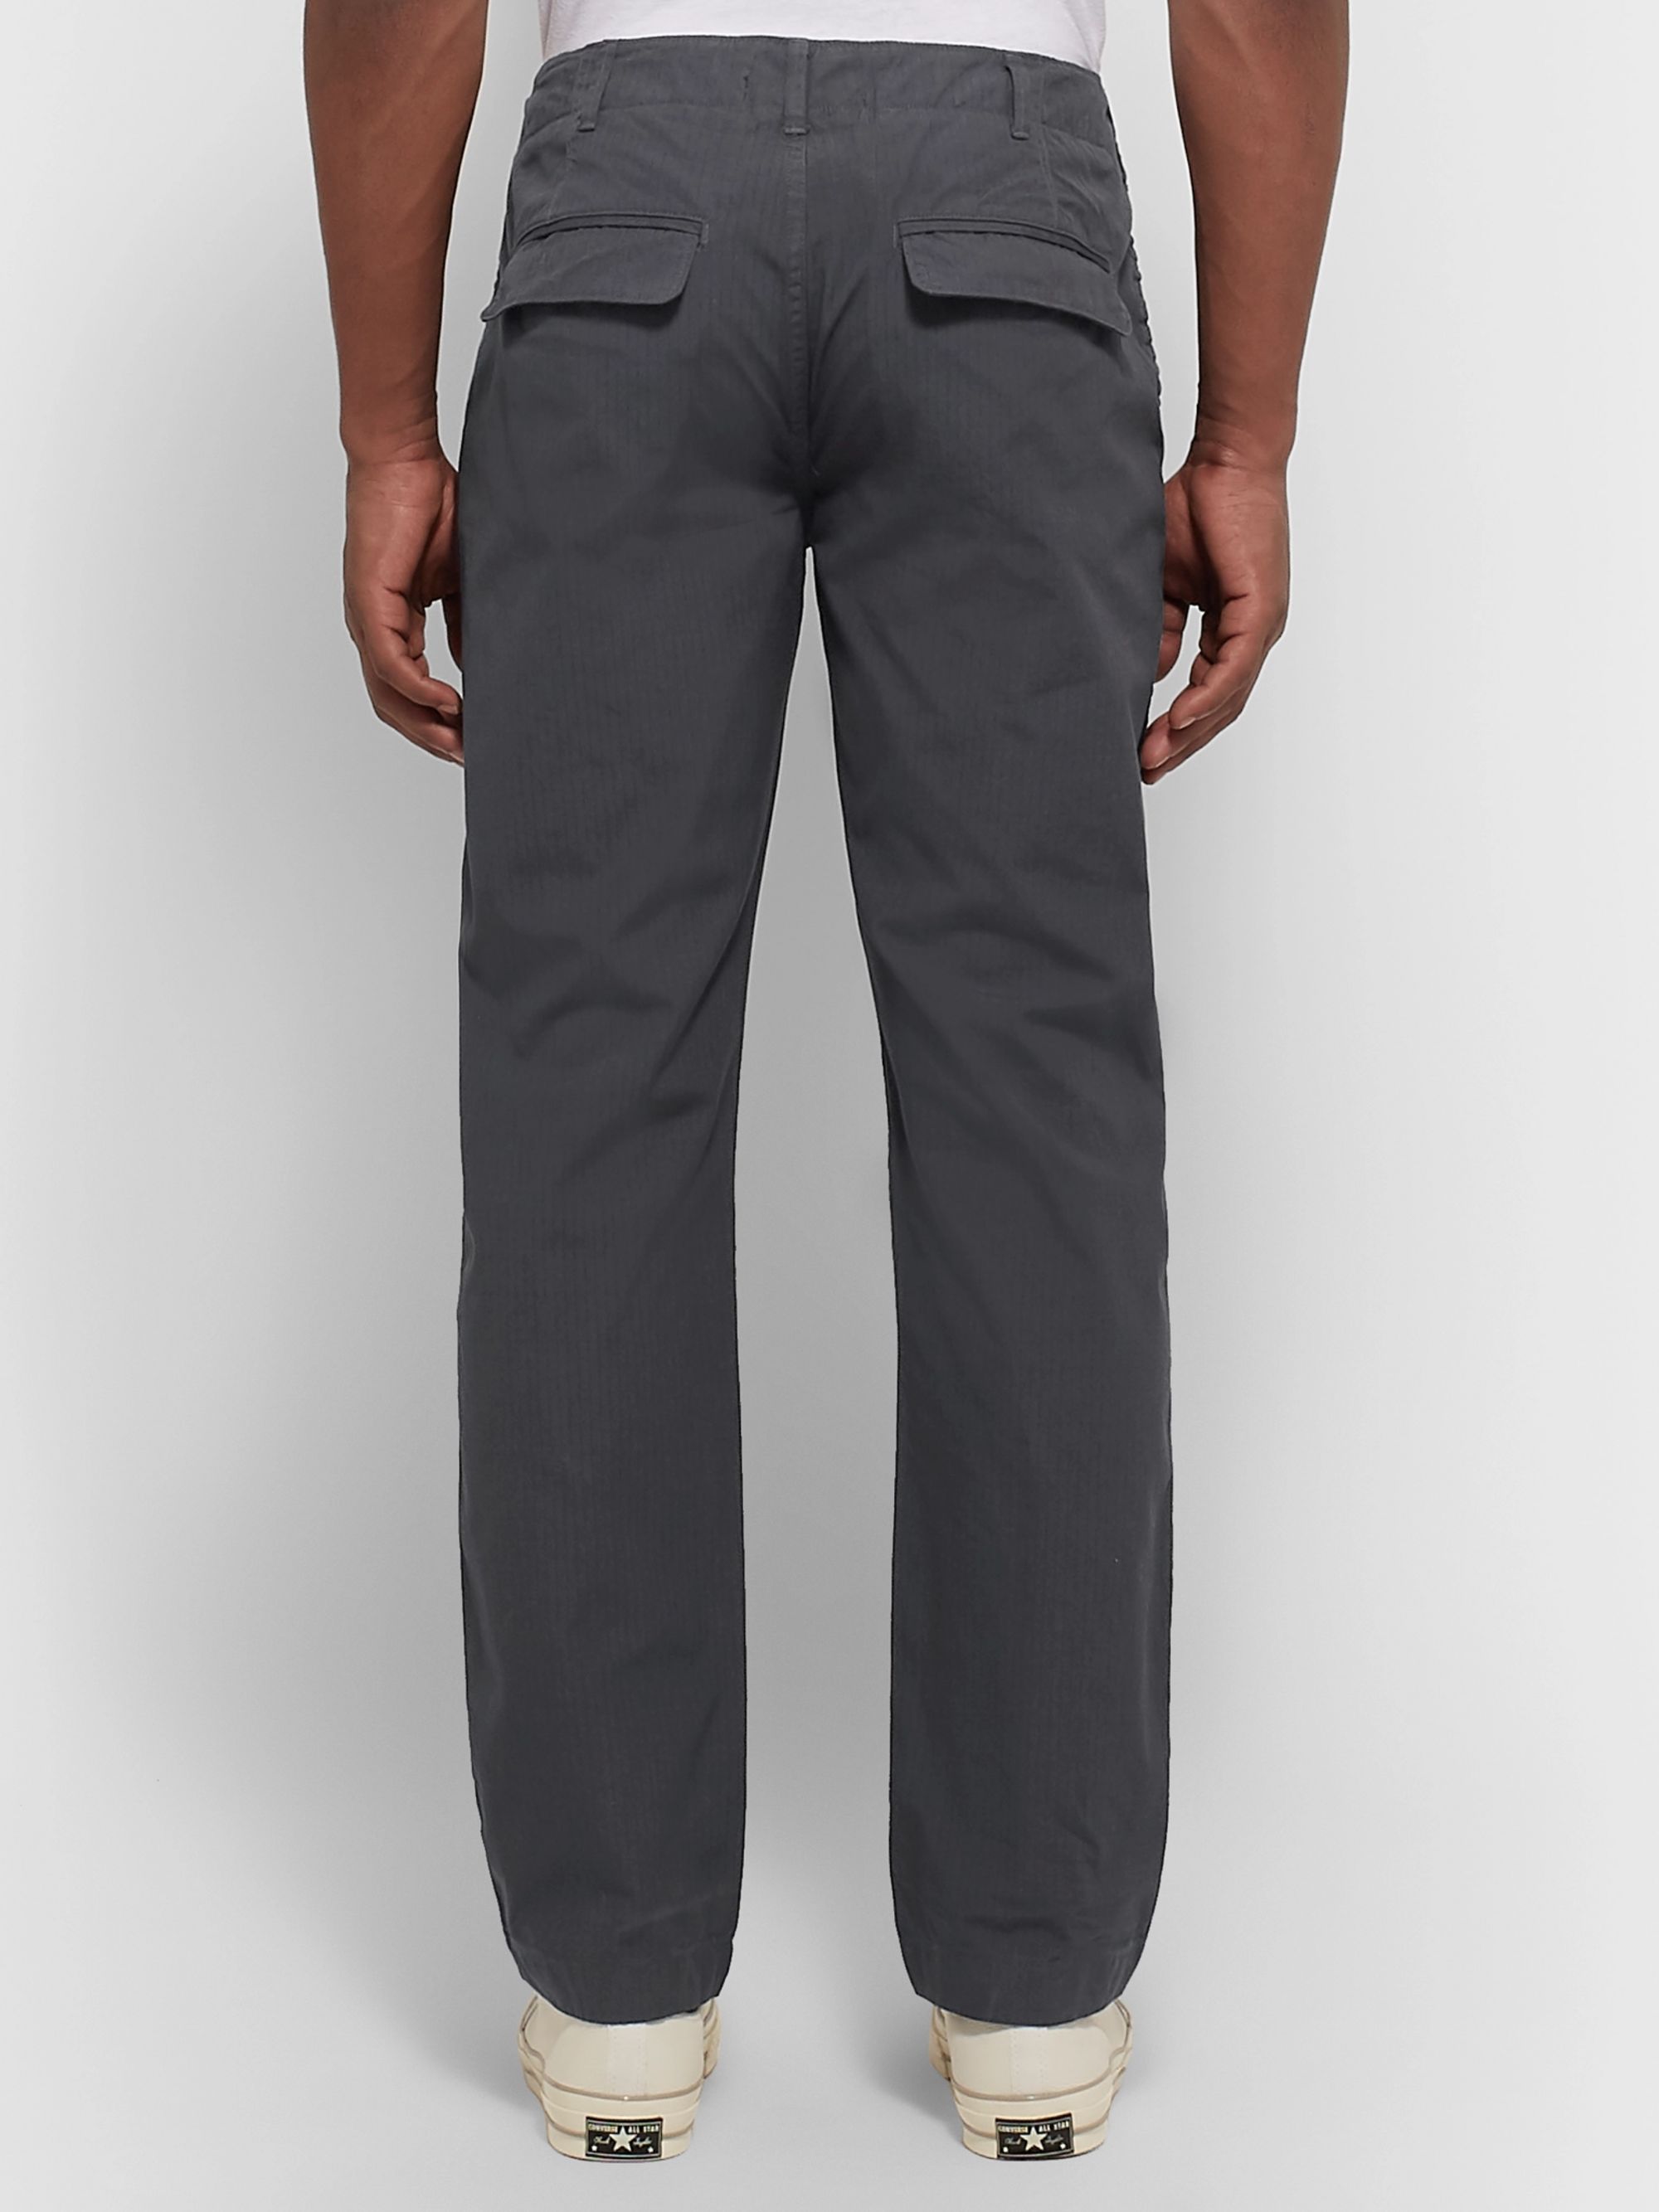 Alex Mill Charcoal Cotton-Ripstop Drawstring Trousers